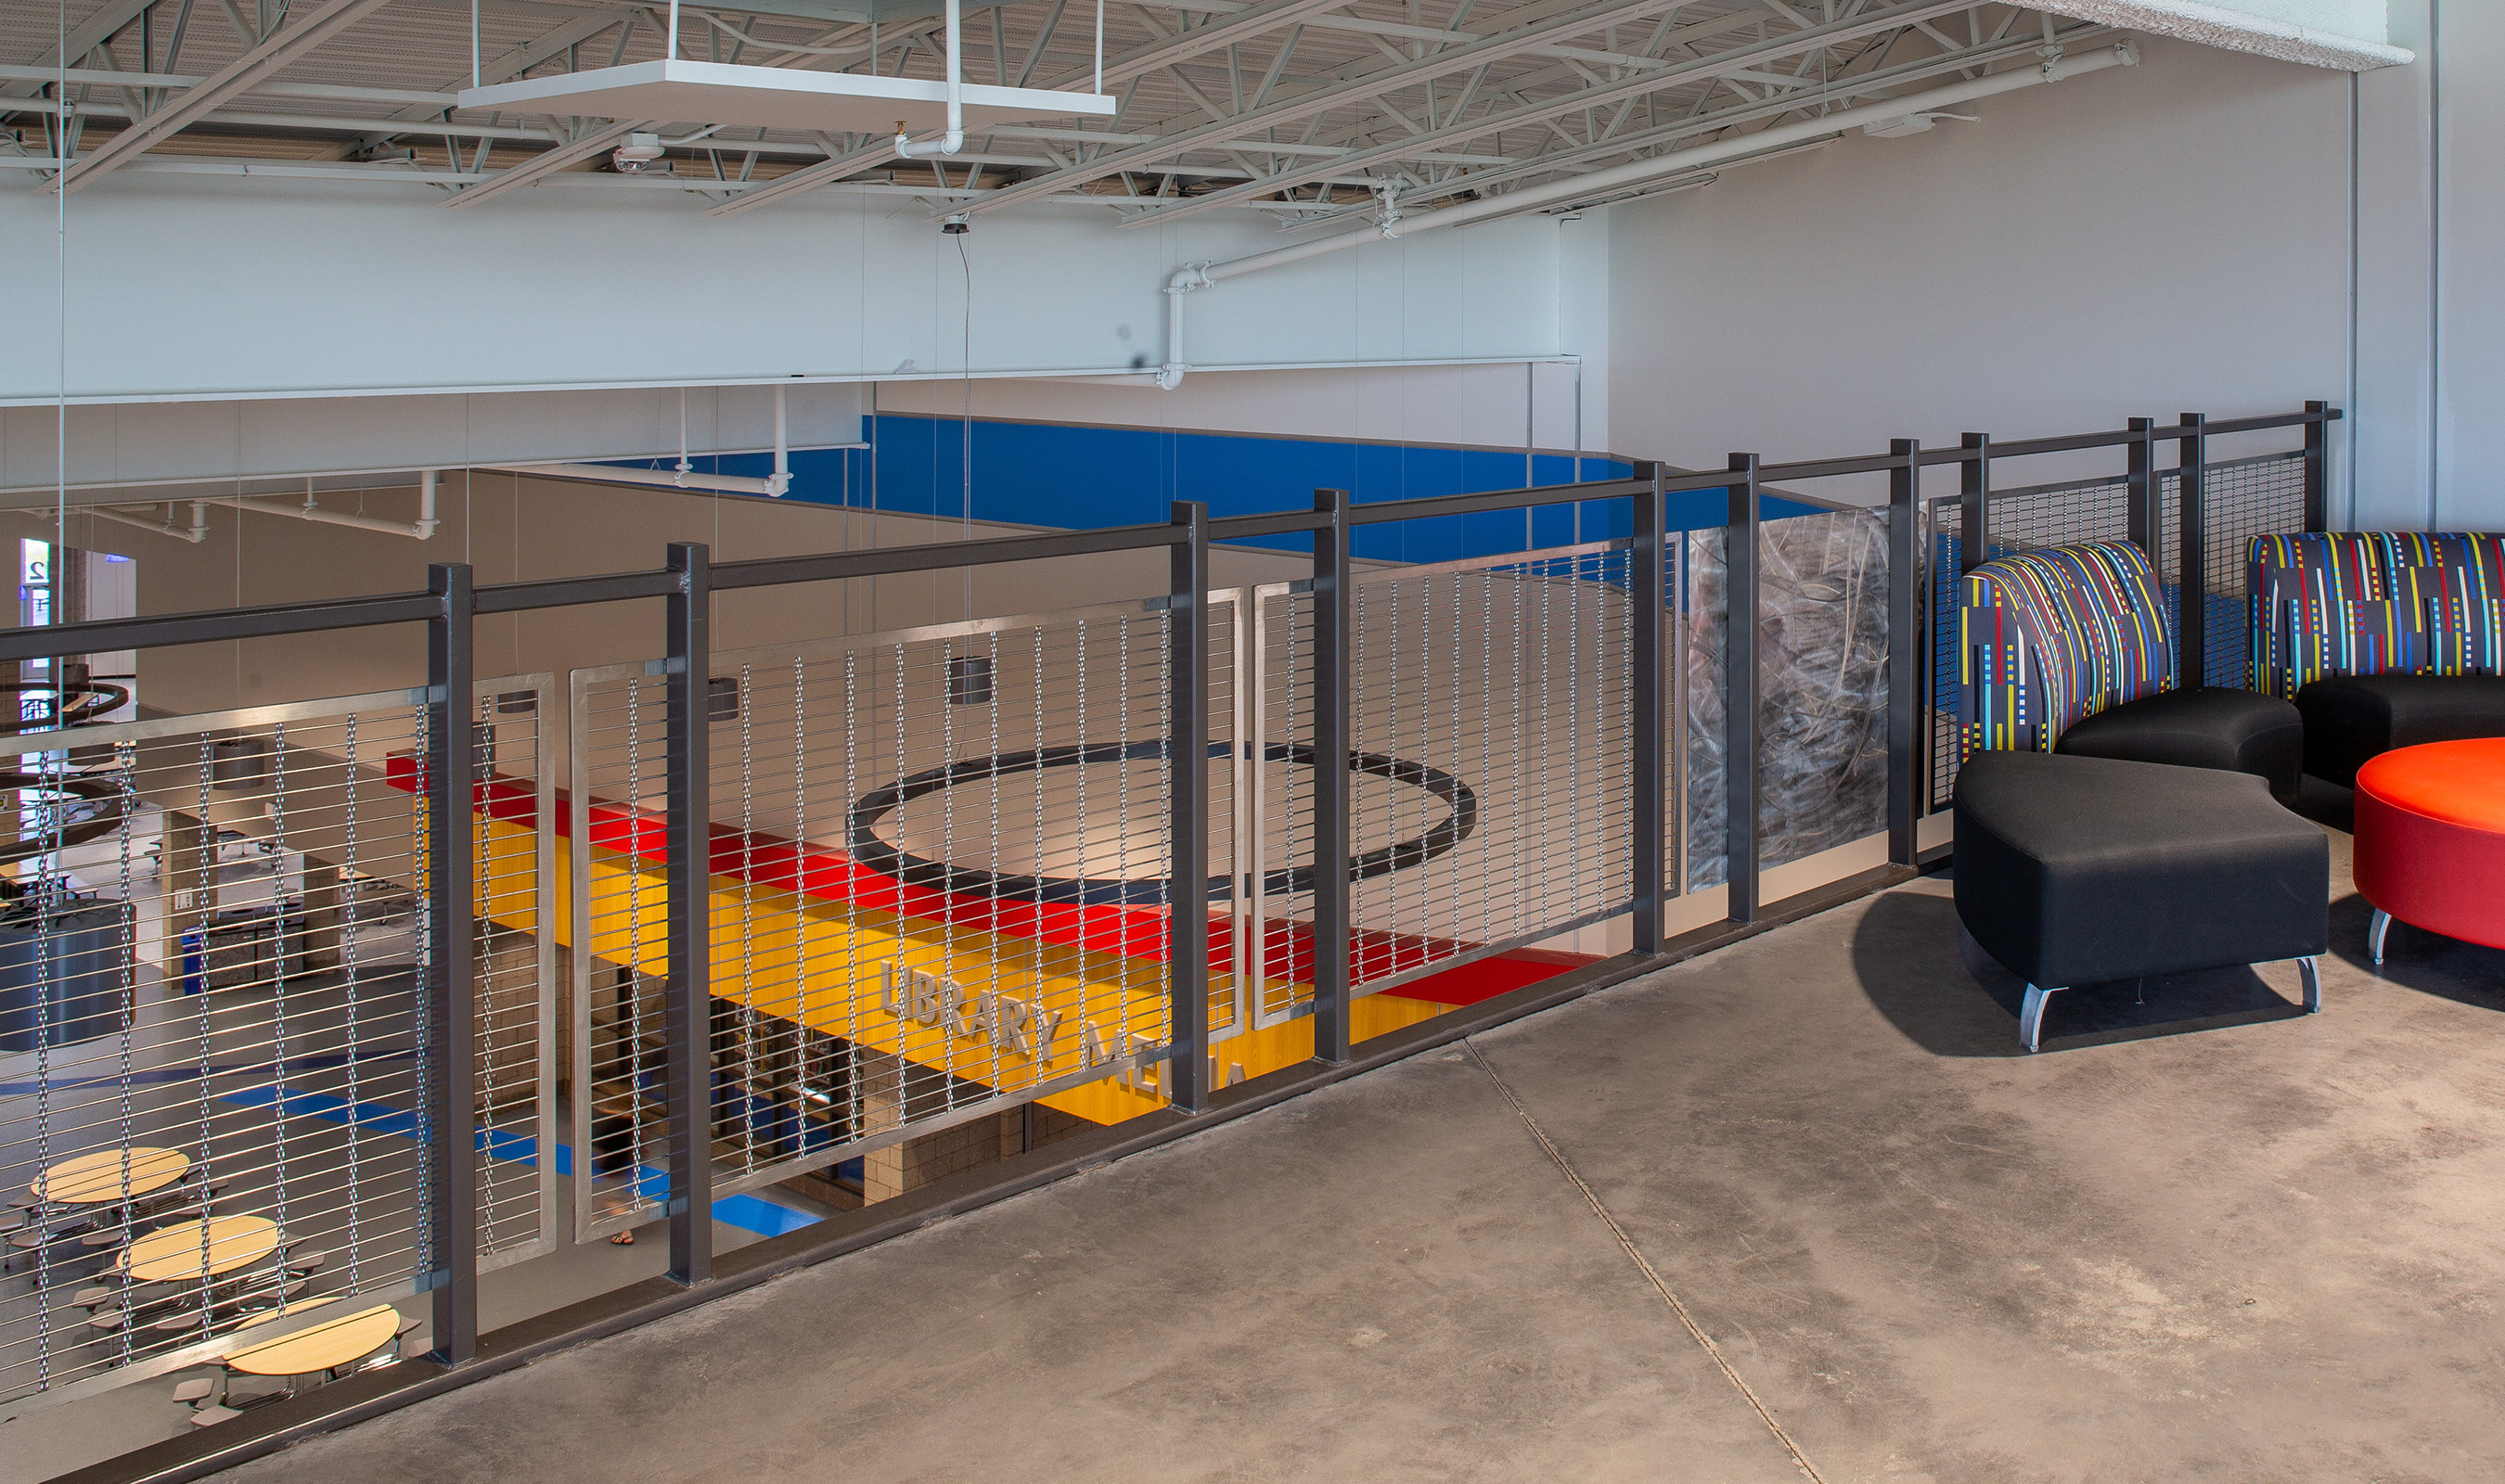 The large percent open area and sleek design of Banker Wire's M13Z-7 woven wire mesh pattern allows the railing infill panels to blend in with surroundings while adding a decorative texture to the space.